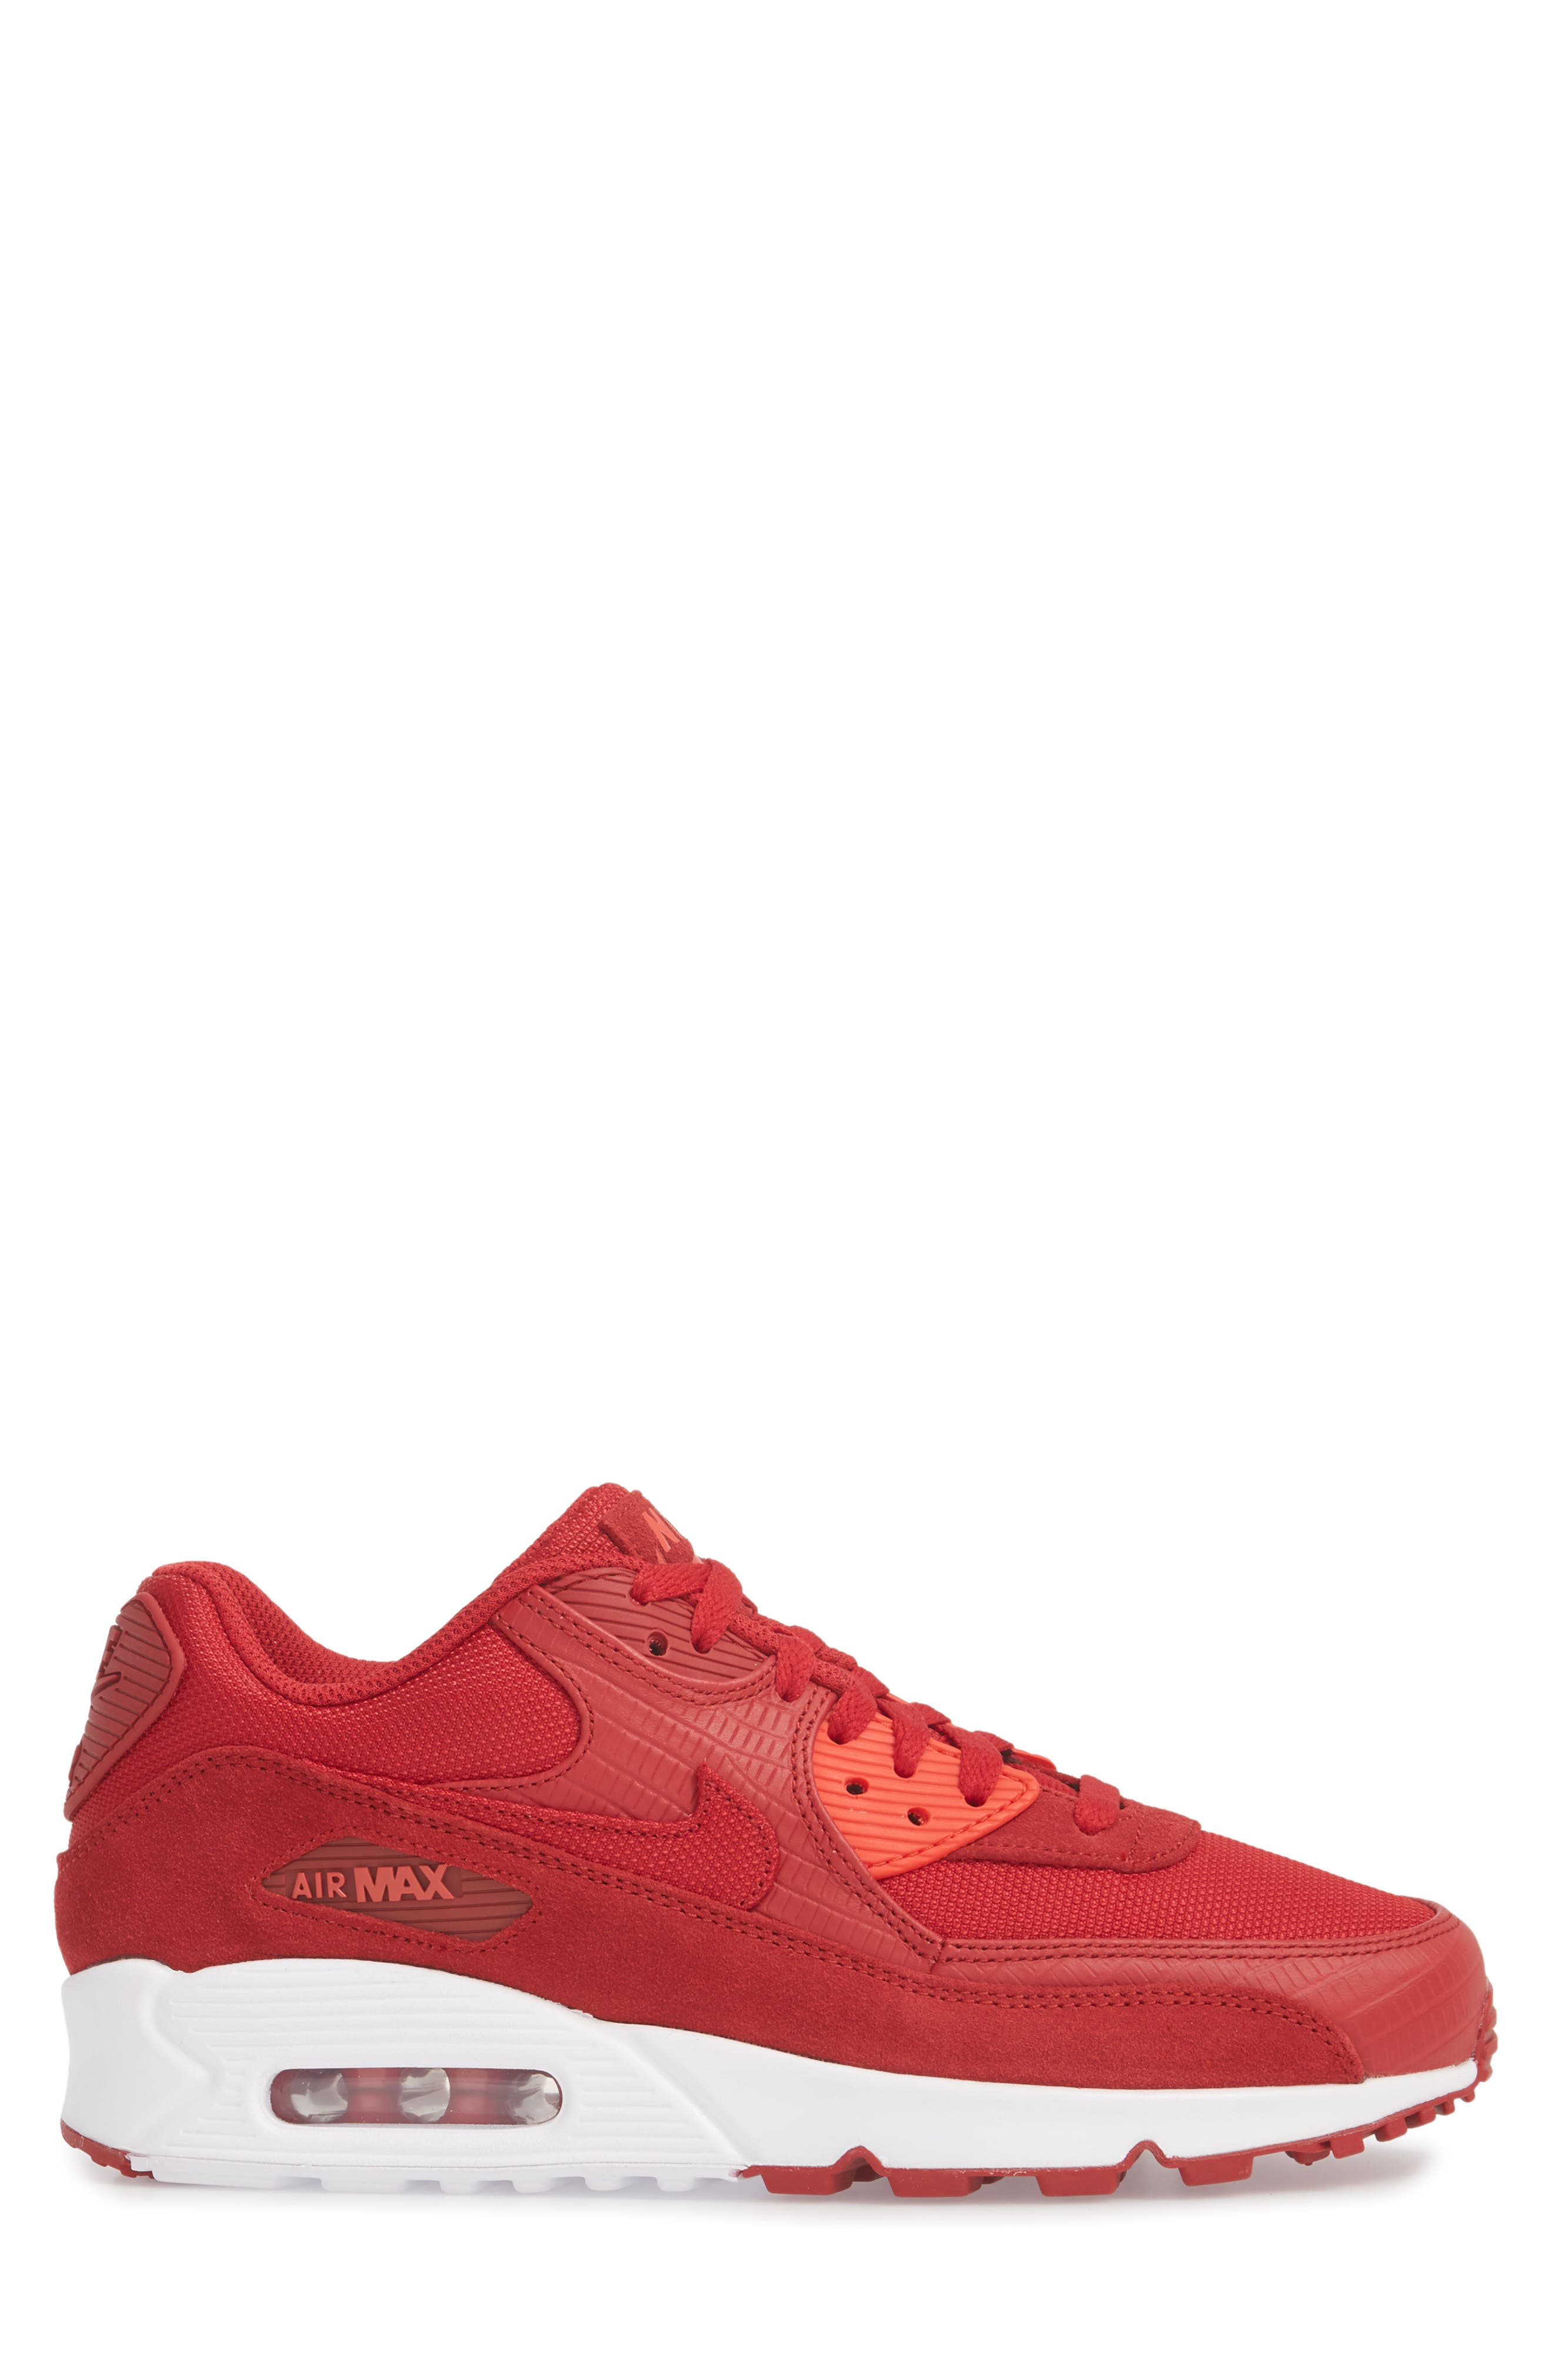 Air Max 90 Premium Sneaker,                             Alternate thumbnail 3, color,                             Gym Red/ White